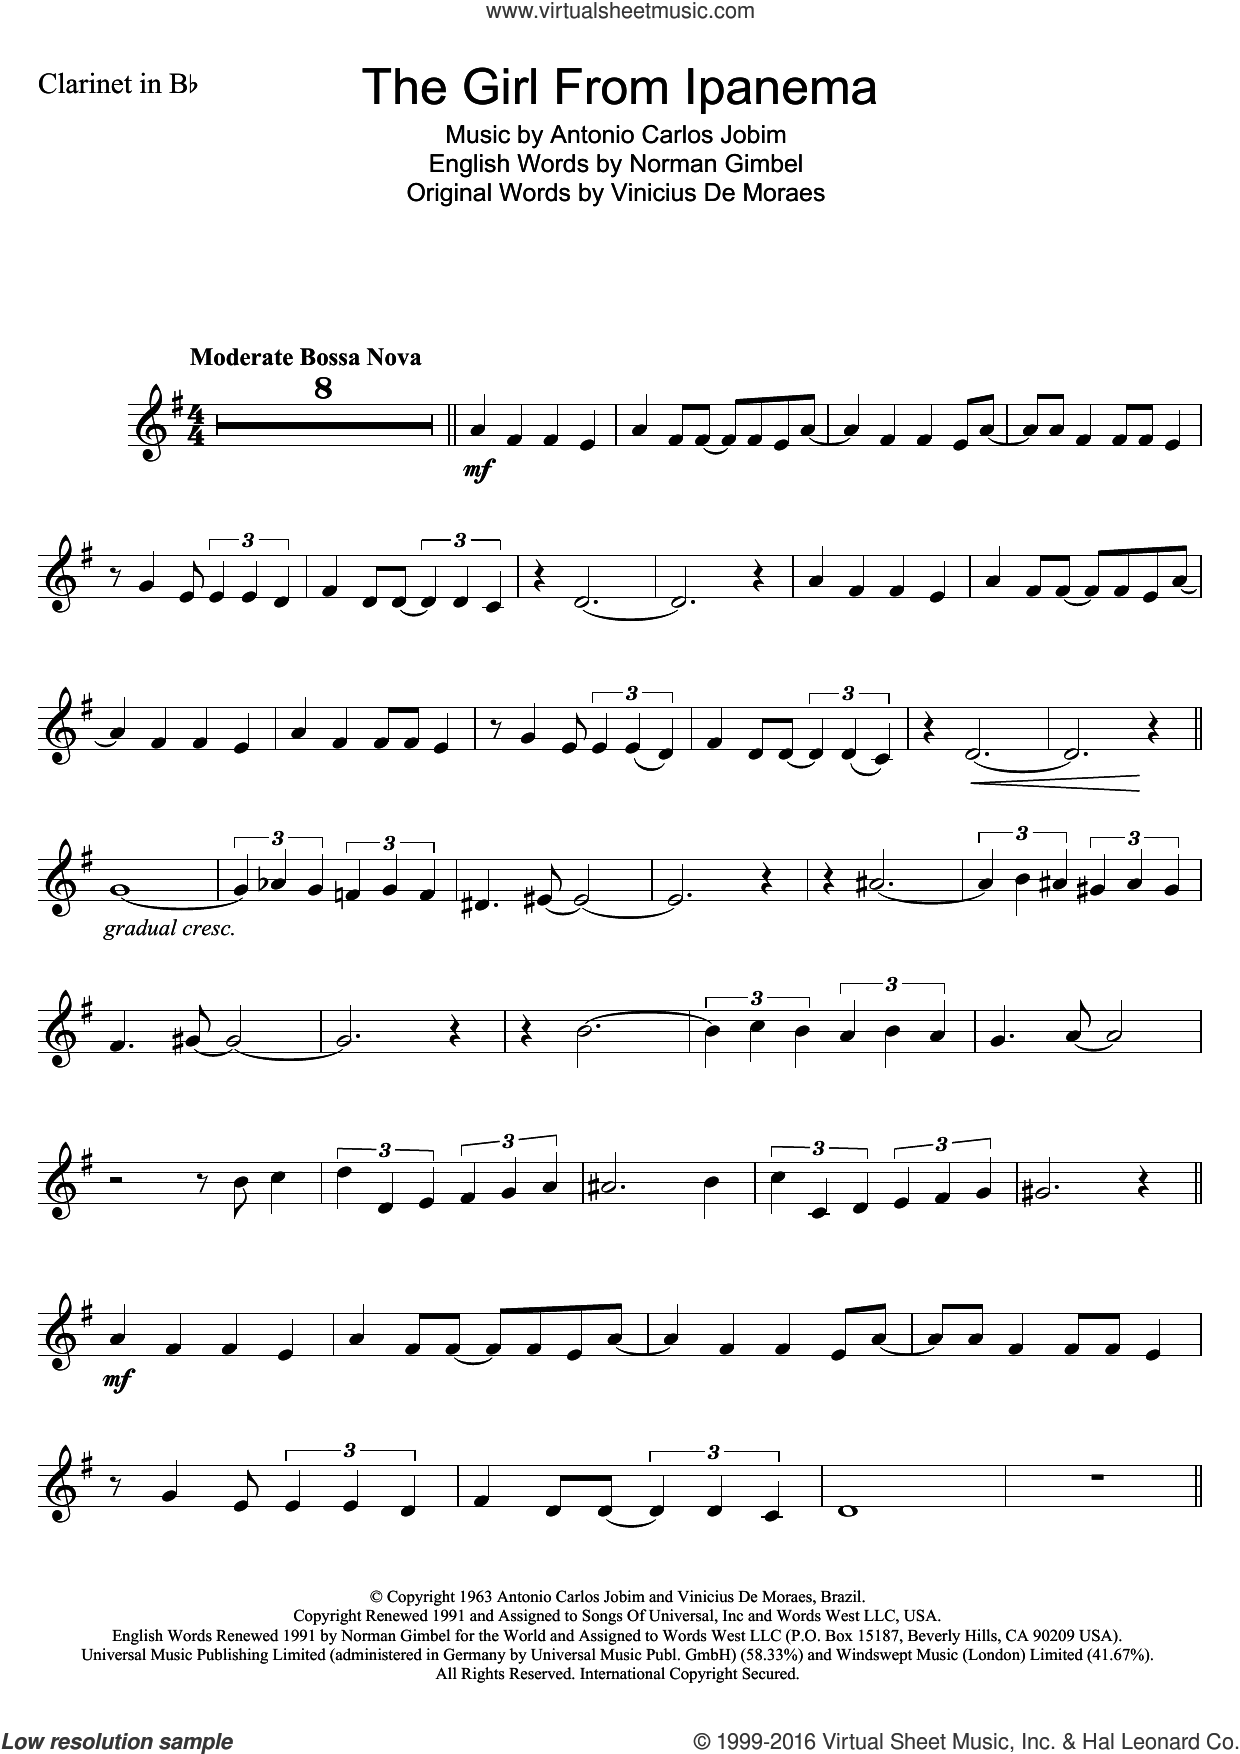 The Girl From Ipanema (Garota De Ipanema) sheet music for clarinet solo by Antonio Carlos Jobim, Norman Gimbel and Vinicius de Moraes. Score Image Preview.